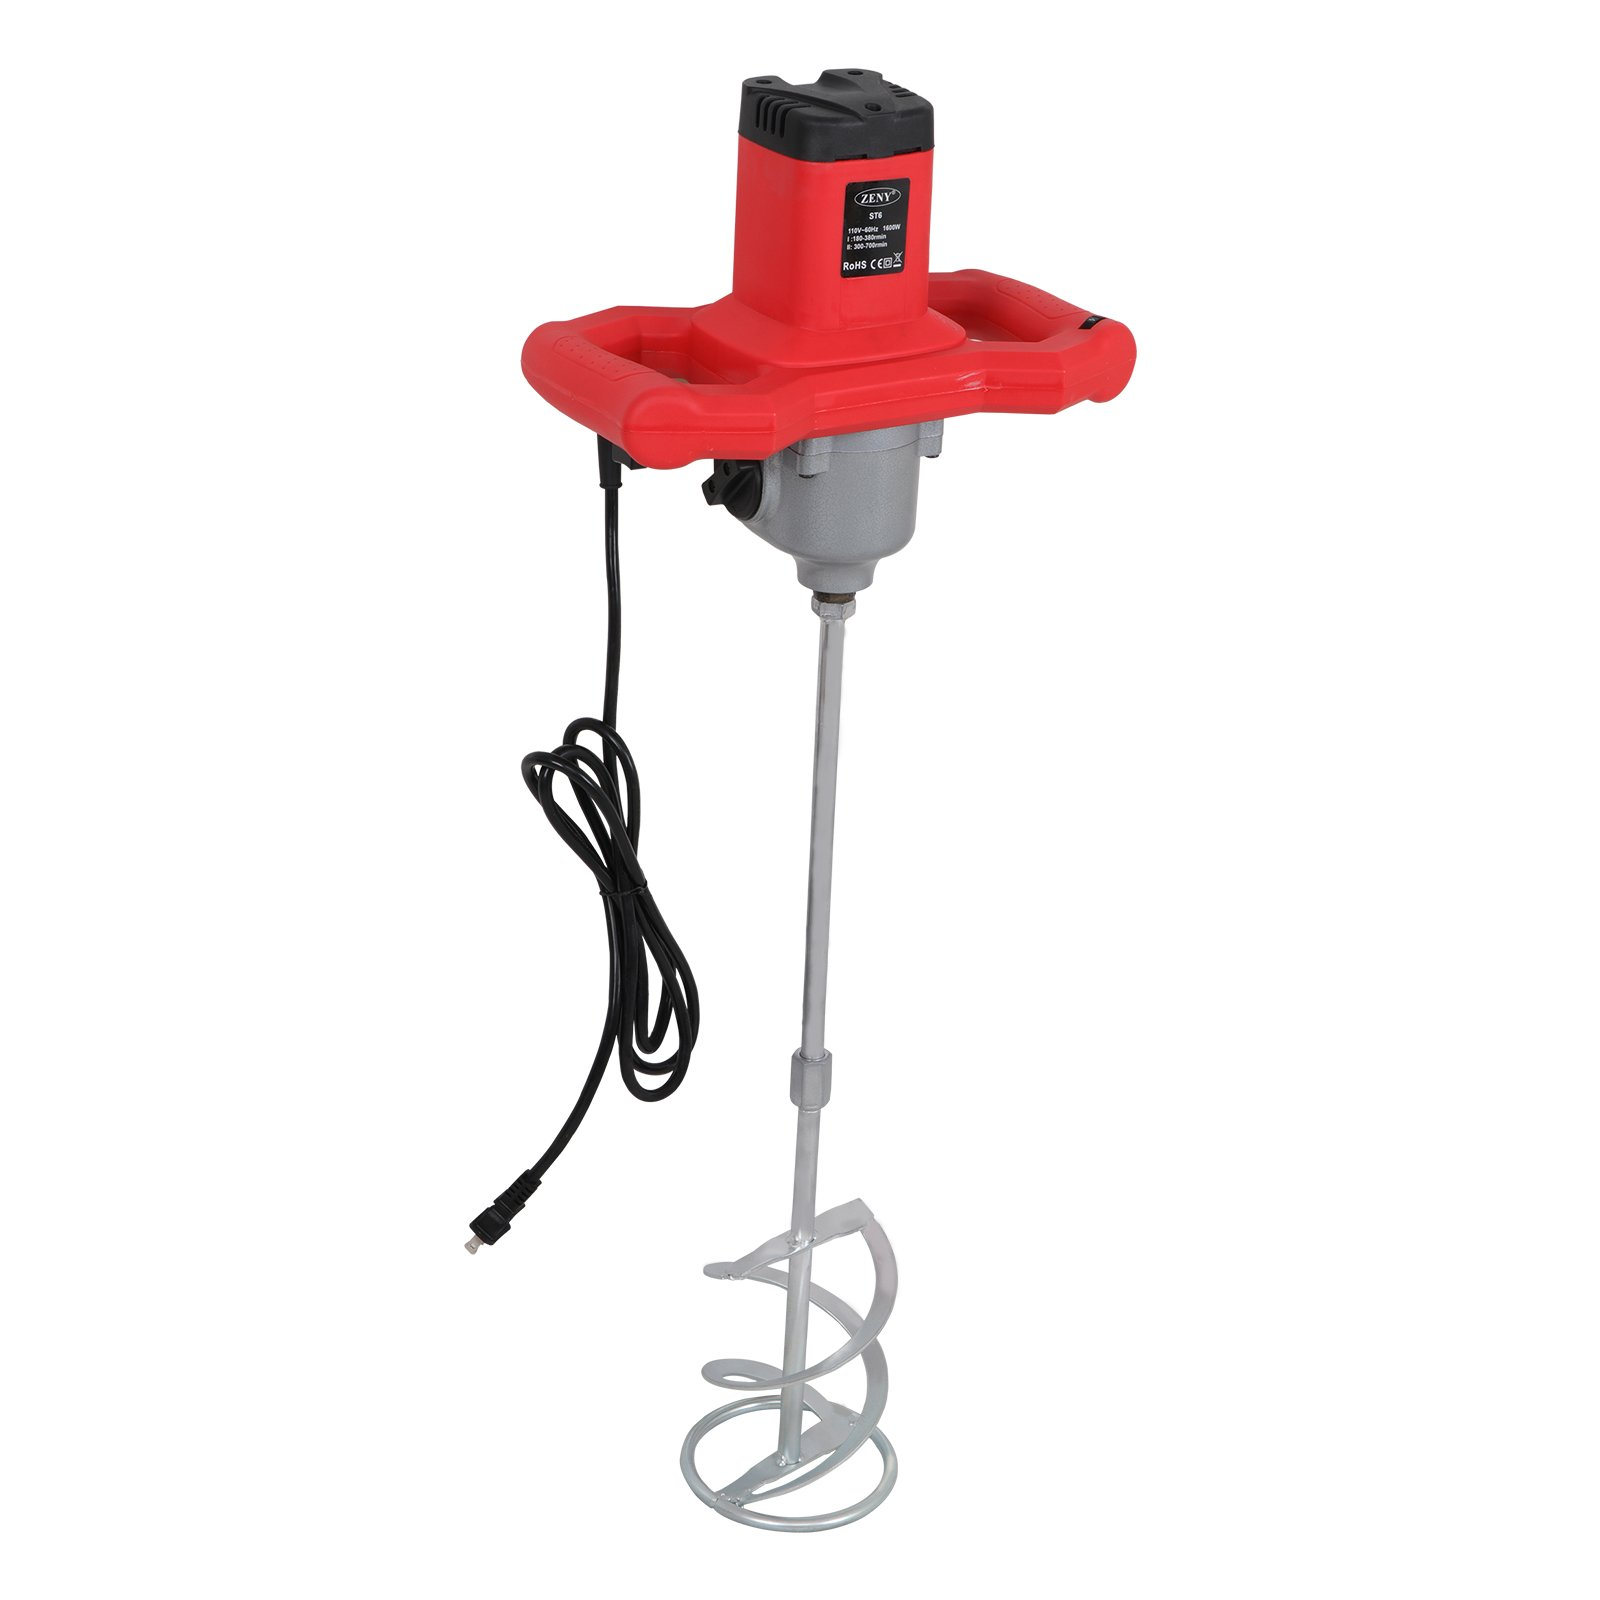 ZENY Concrete Mixers 1600W Adjustable 7 Speed Handheld Electric Concrete Cement Mixer Thinset Mortar Grout Plaster Cement Mixer Stirring Tool AC 110V by ZENY